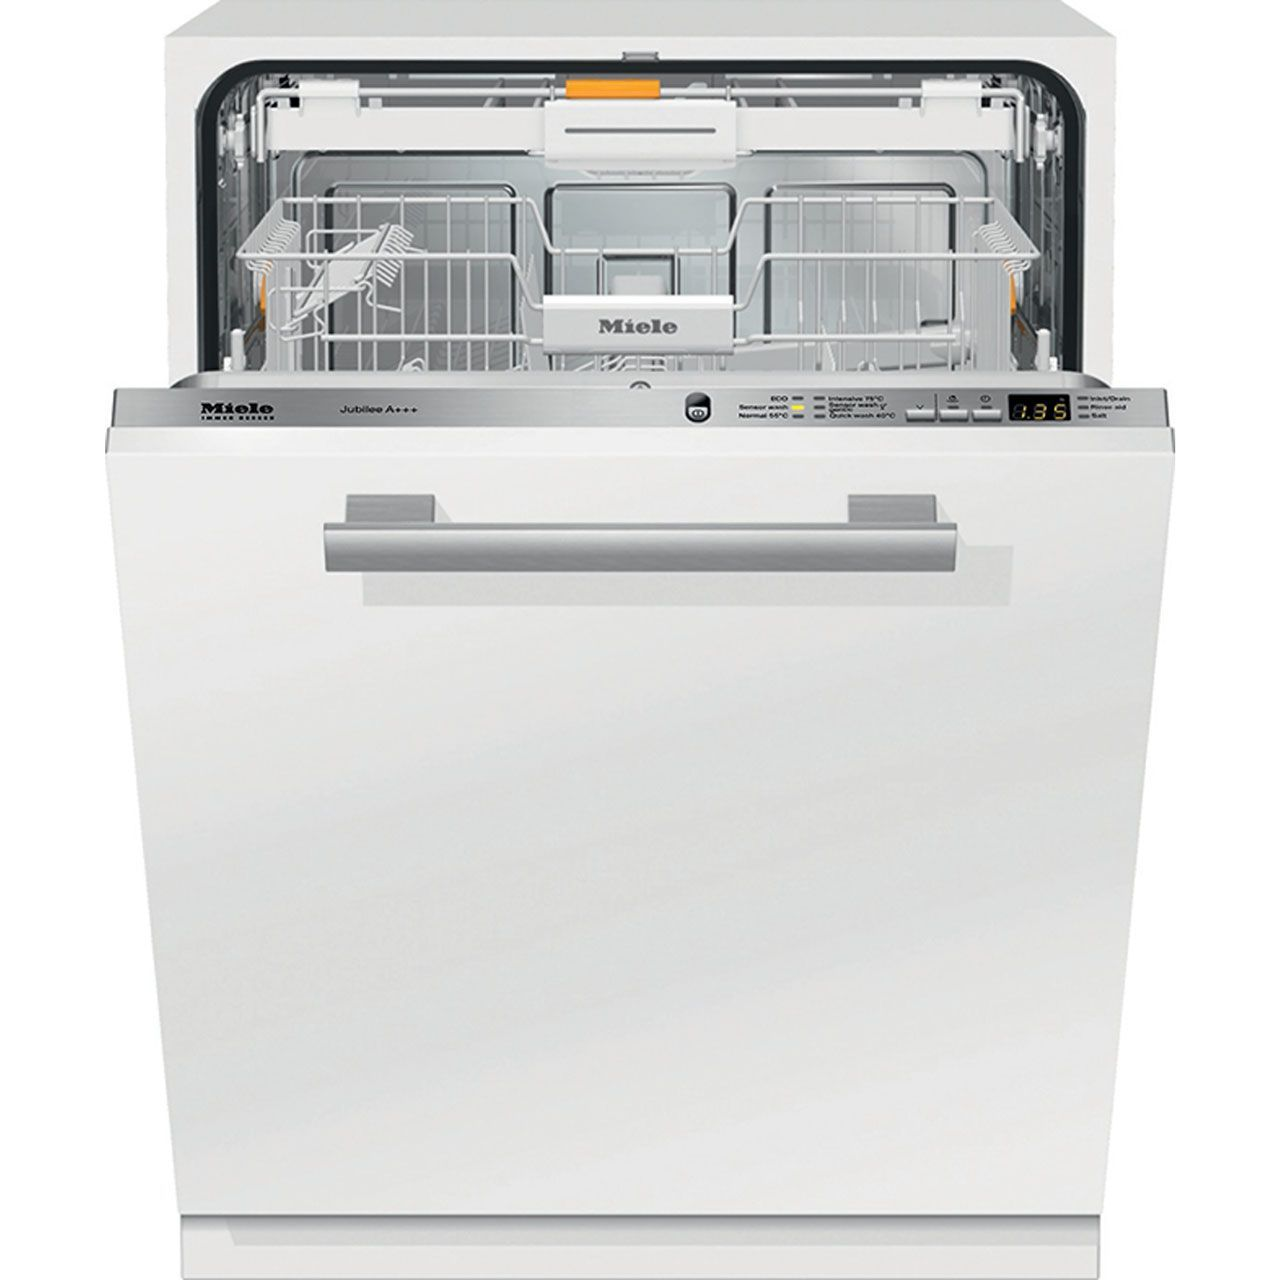 Lave Linge Top Miele G6060scvi Cs Miele Integrated Dishwasher Ao Parenting